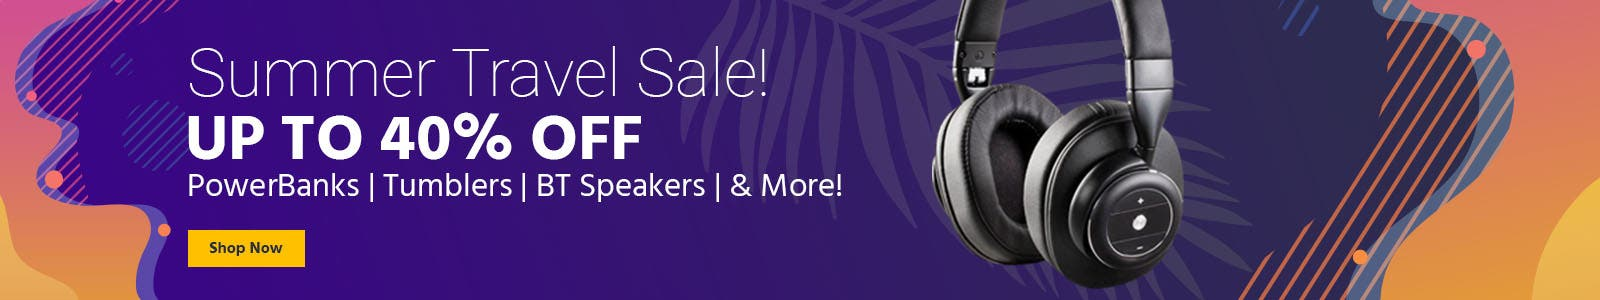 Summer Travel Sale! up to 40% off, powerbanks, tumblers. bt speakers, and more